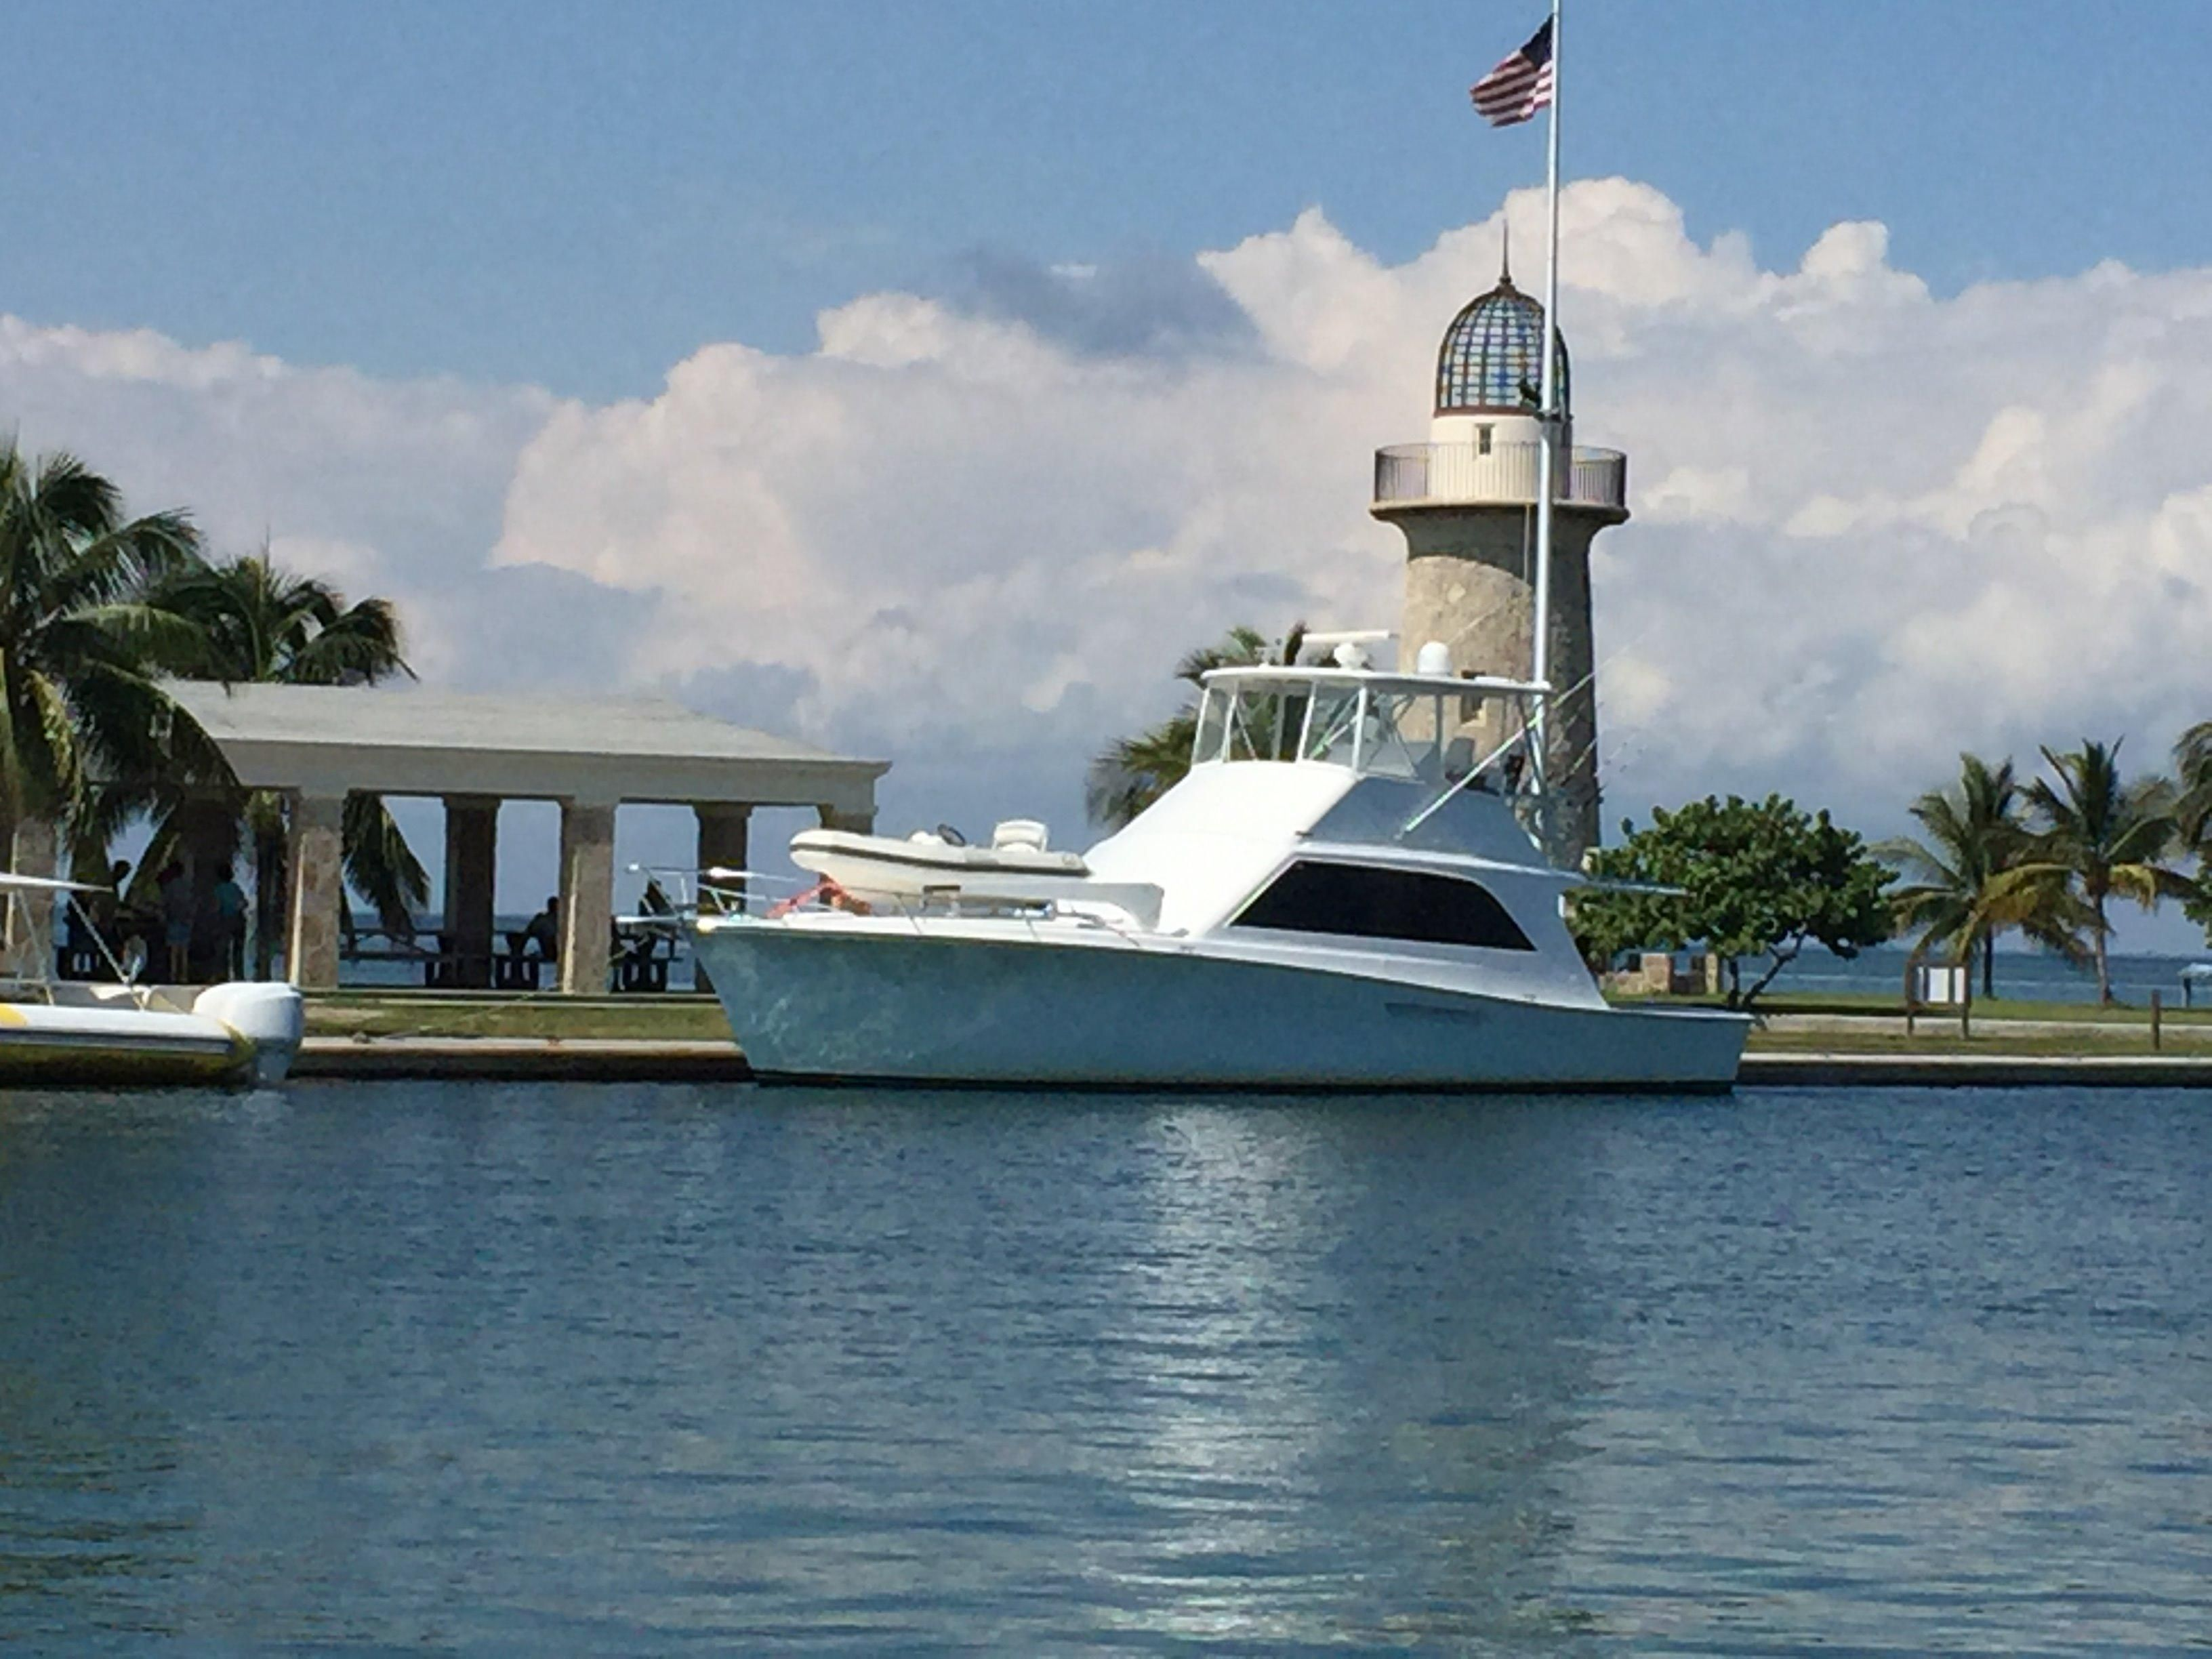 1990 ocean yachts super sport 48 power boat for sale www for Ocean yachts 48 motor yacht for sale